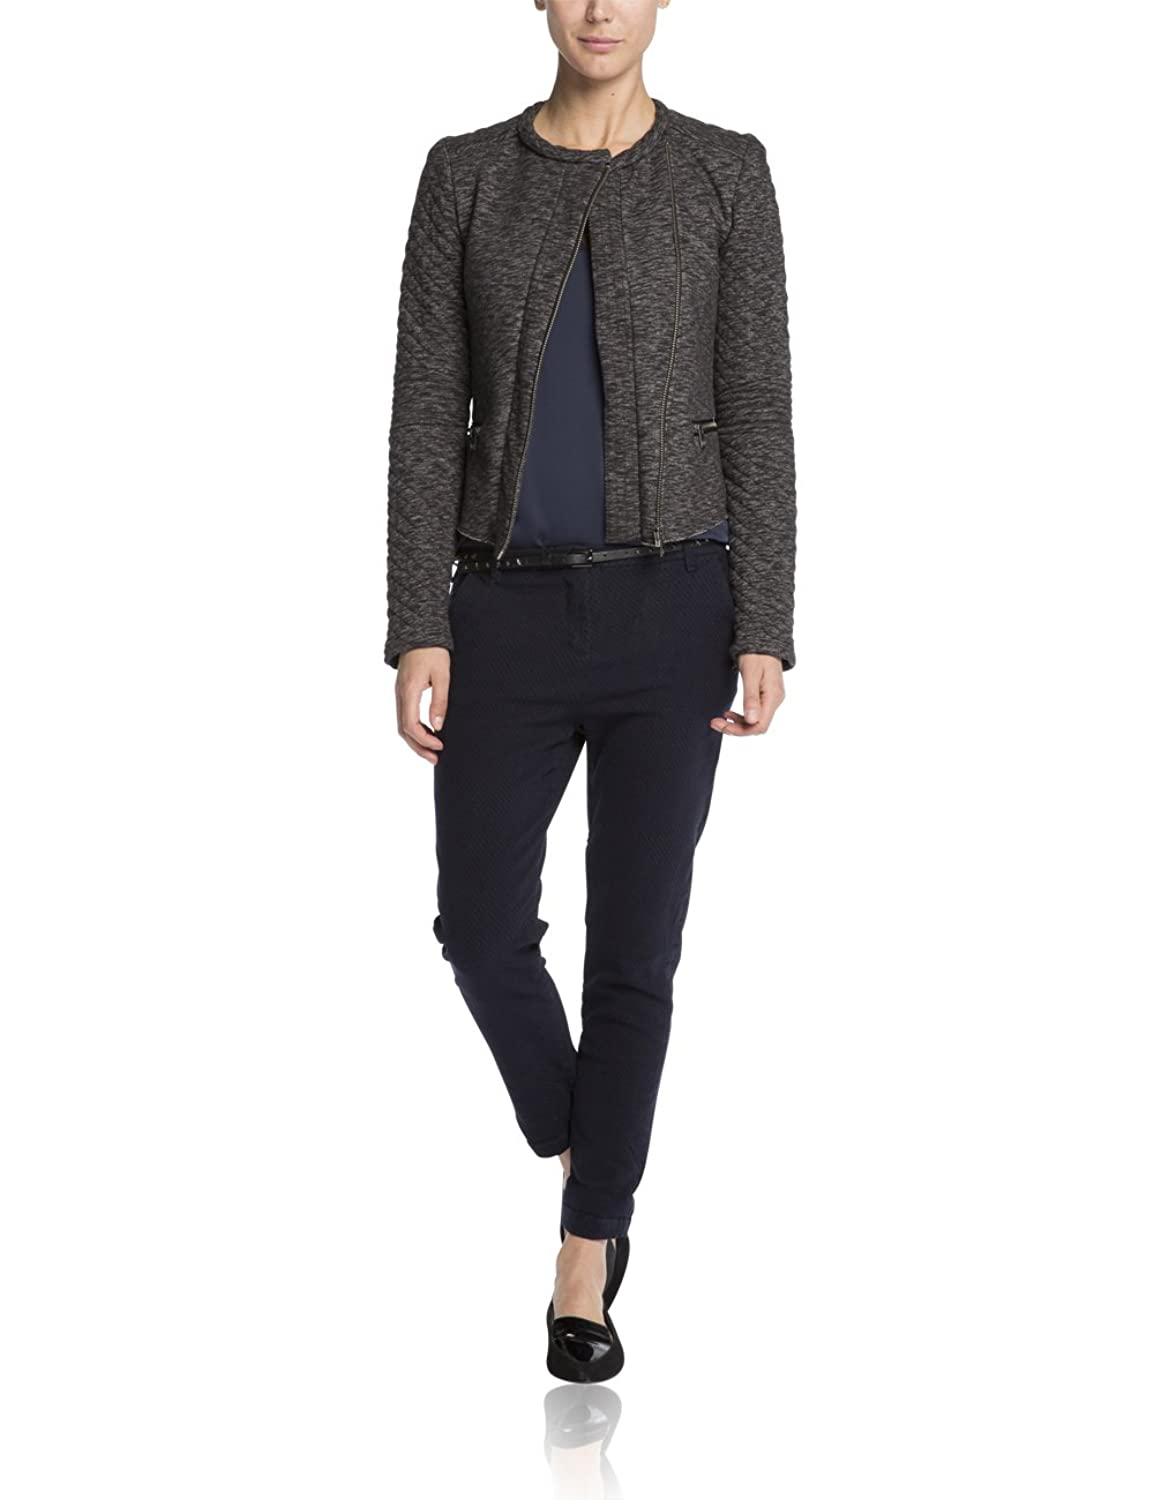 Maison Scotch Damen Jacke 14240830835